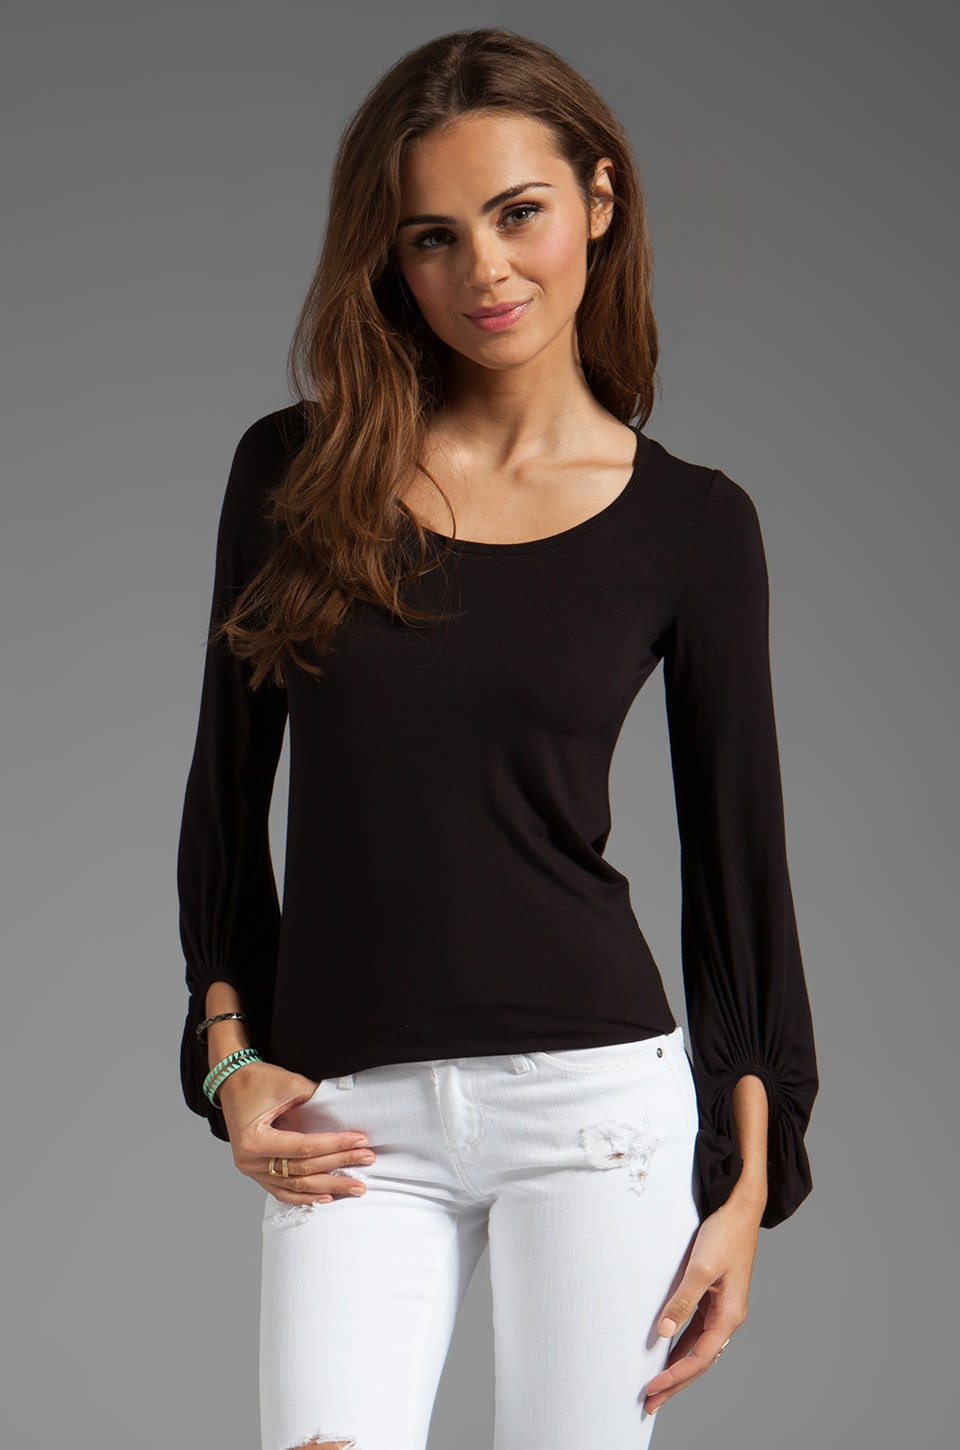 Bailey 44 Bronte Long Sleeve Top in Black